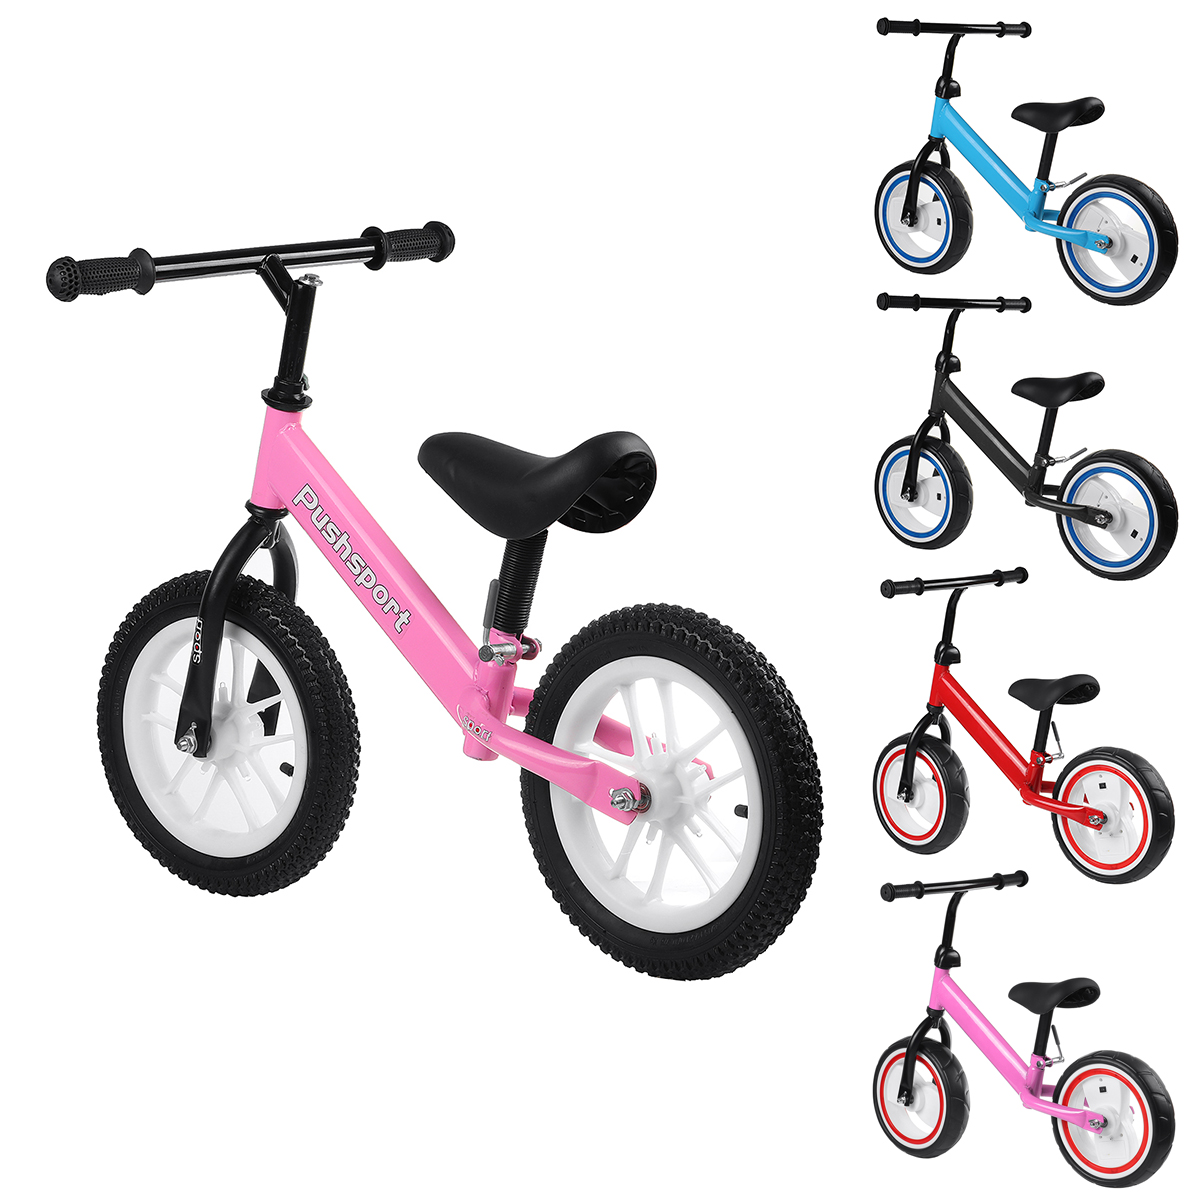 Kids Adjustable Height Flashing Balance Bikes Children Bicycle with Comfortable Cushions&Non-Slip Handles Wear-Resistant&Shock-Absorbing Rubber Tires Aged 2-7 Years Old